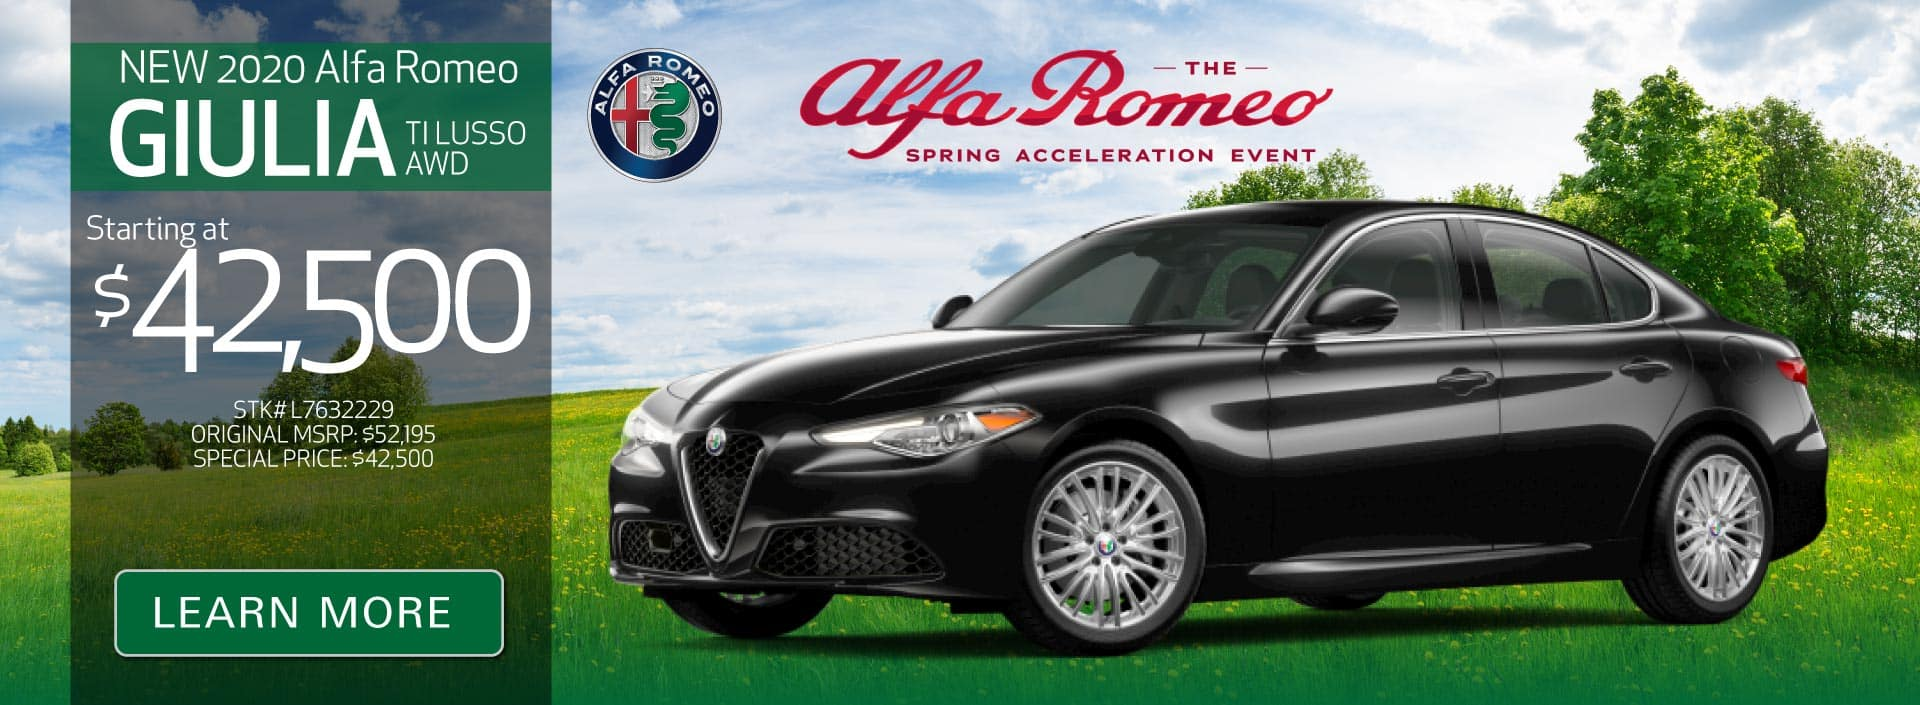 New 2020 Giulia TI Lusso AWD starting at $42,500 | Learn More